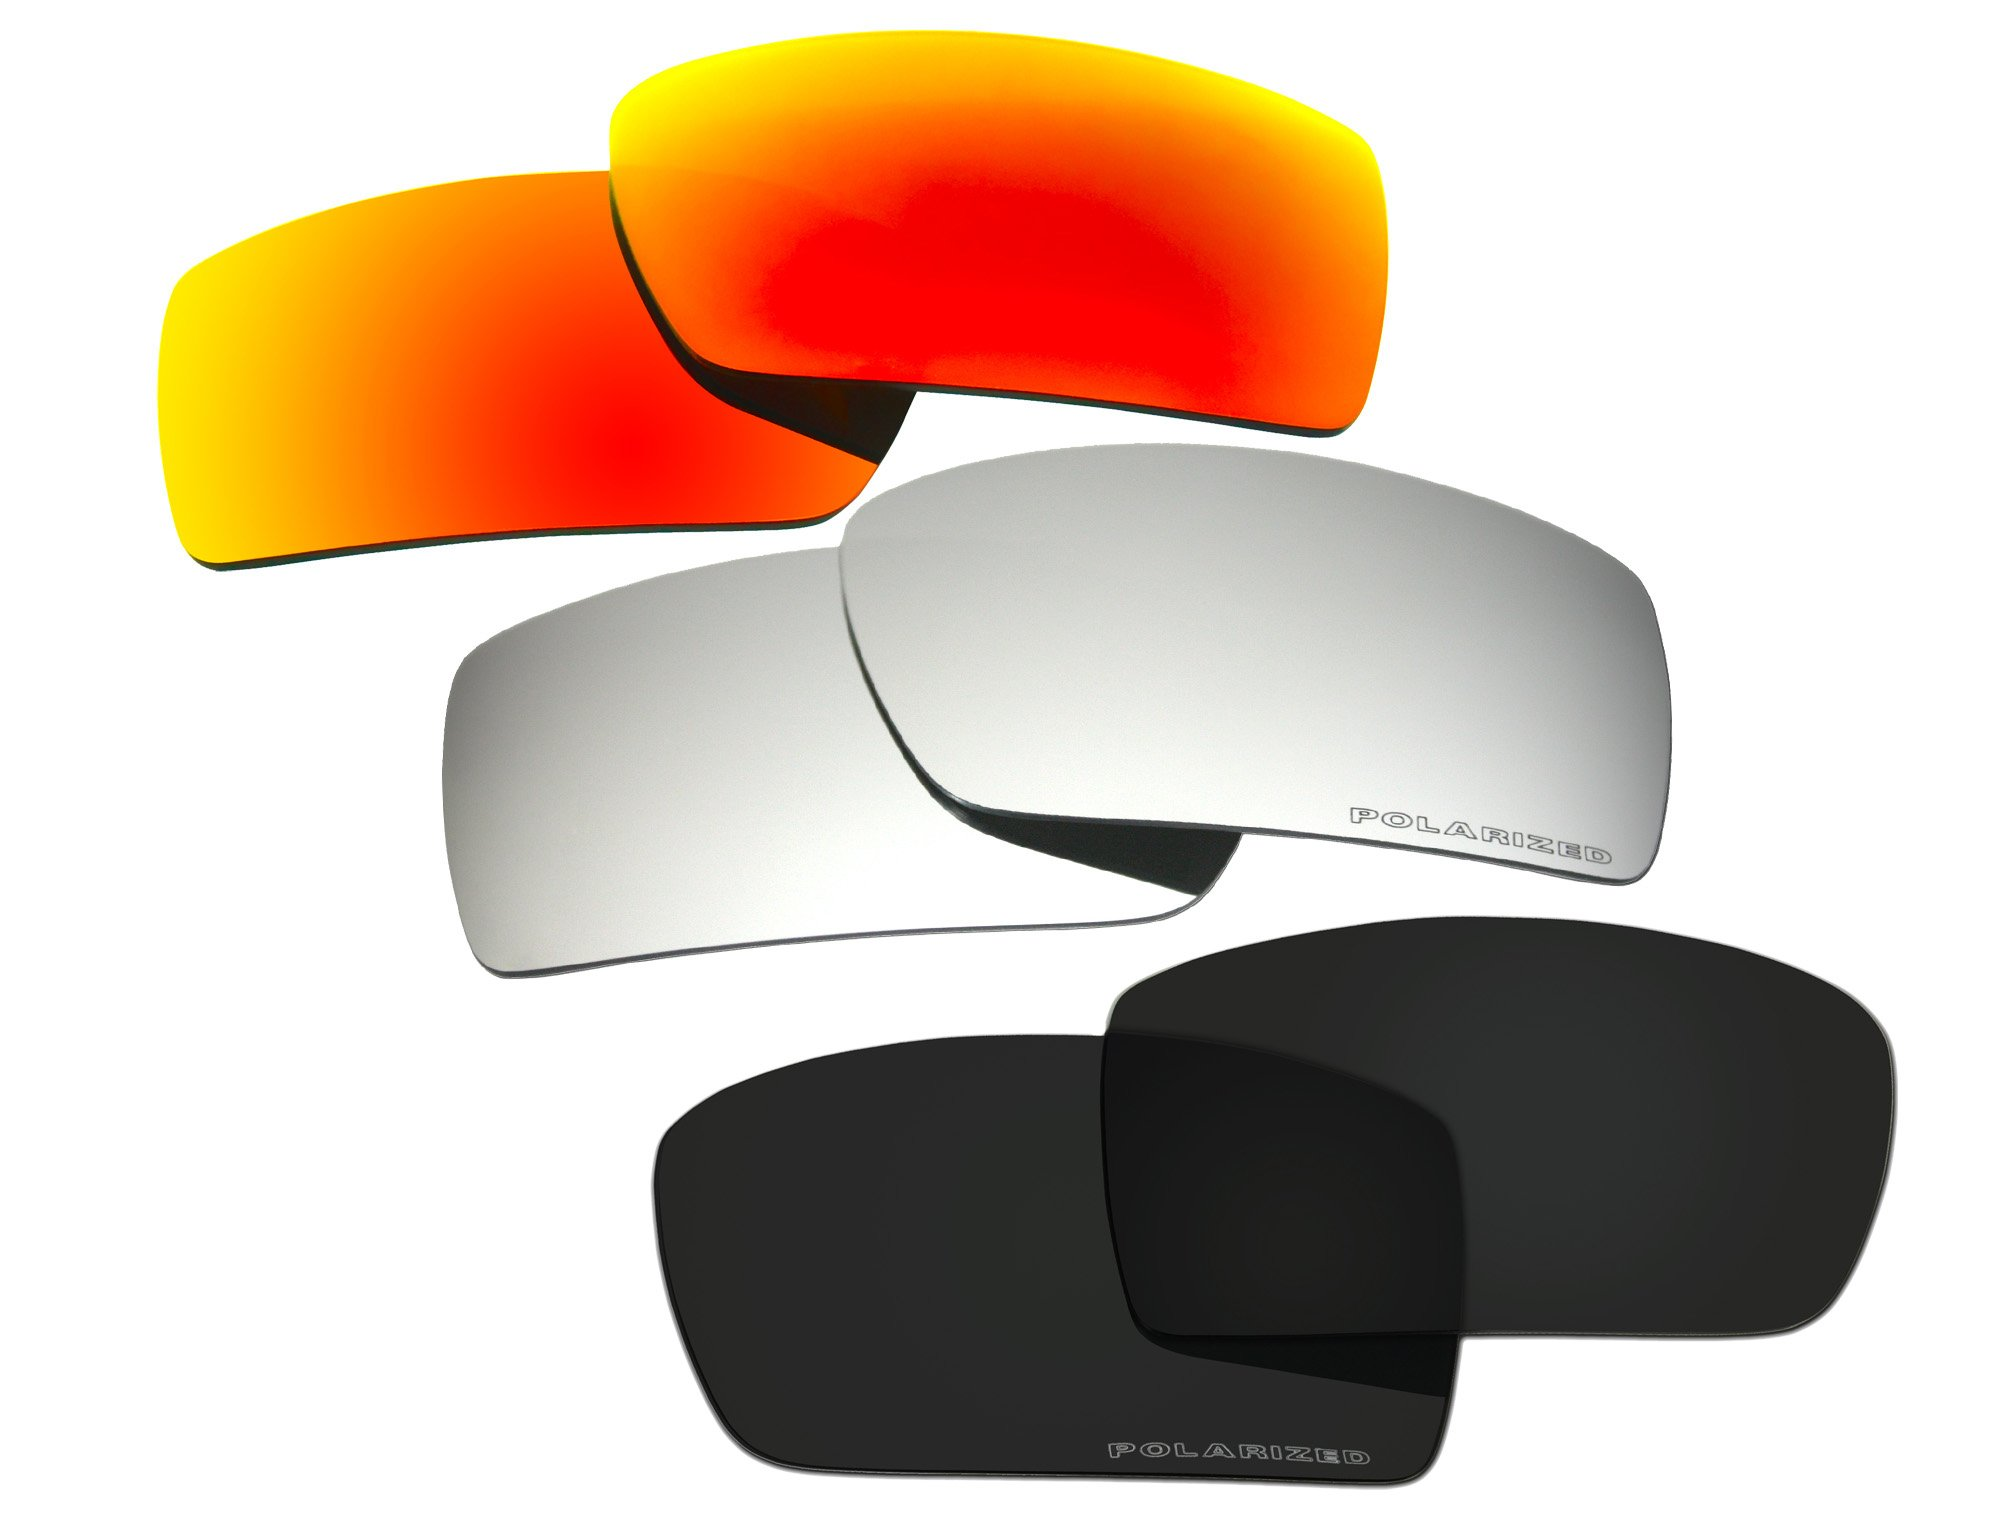 3 Pairs Polarized Replacement Sunglasses Lenses for Oakley Gascan with Excellent UV Protection